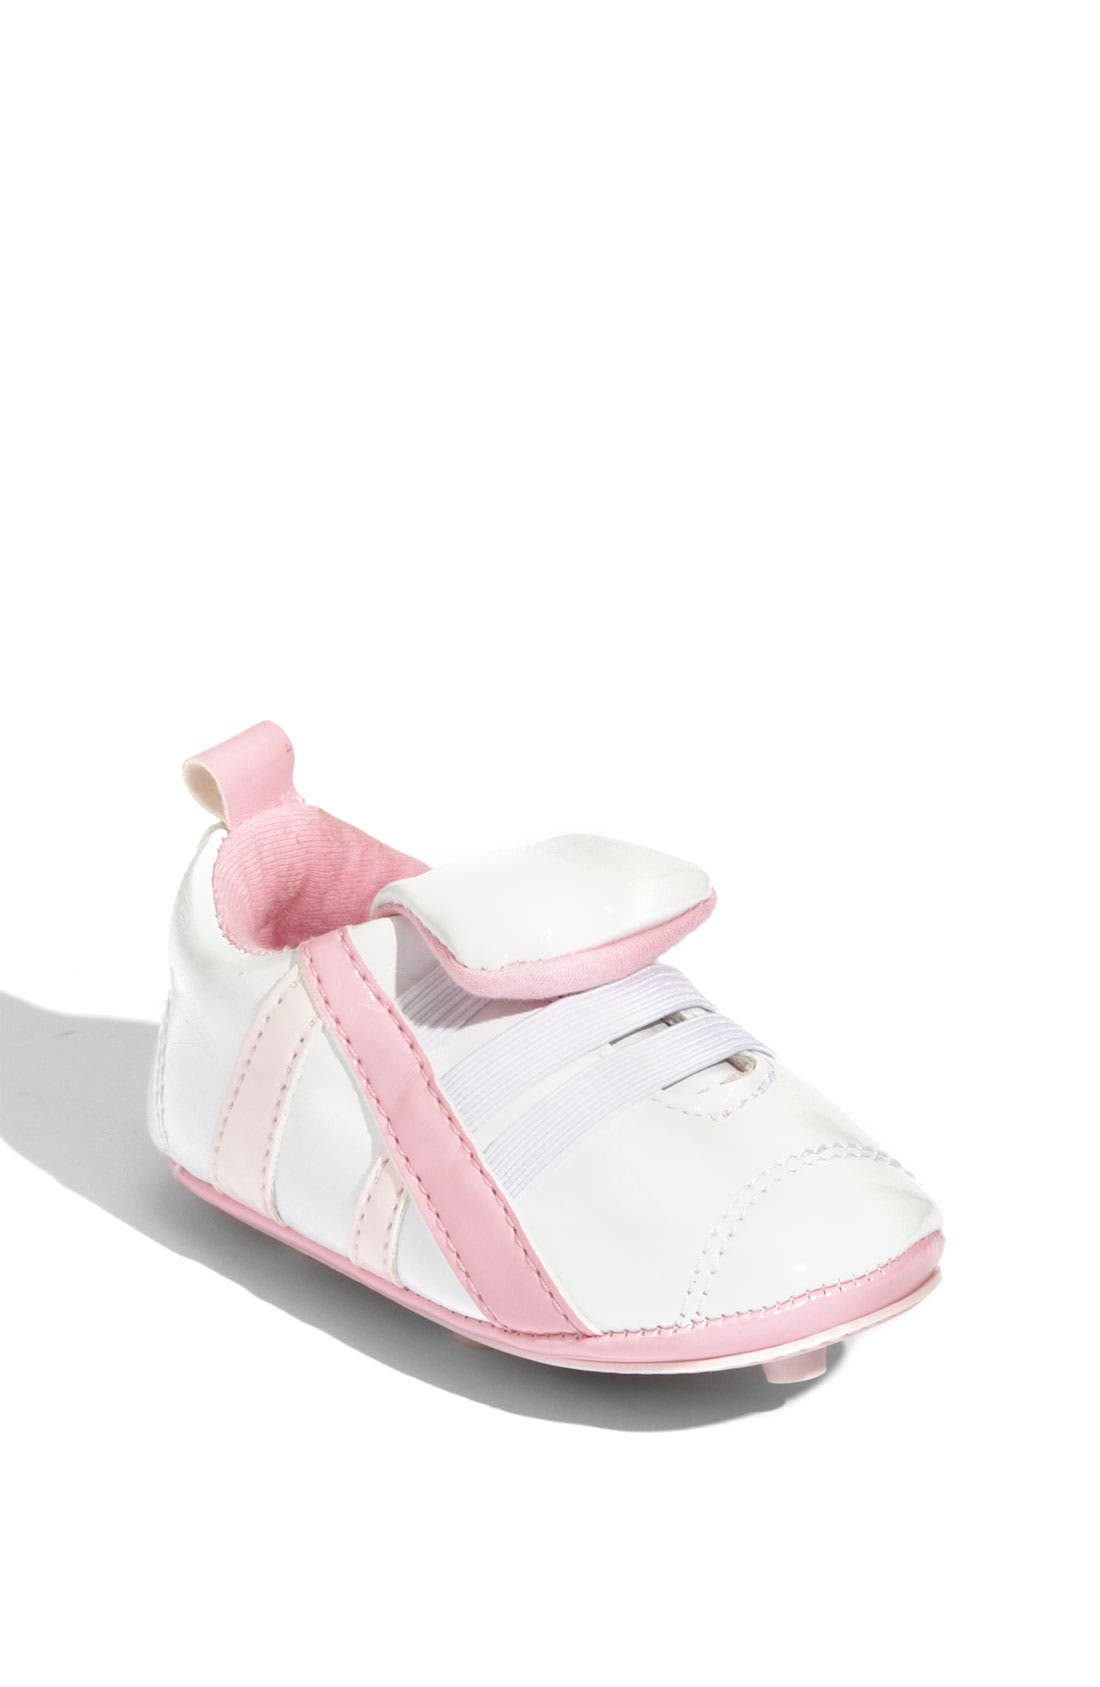 Main Image - First Cleats Shoe (Baby)